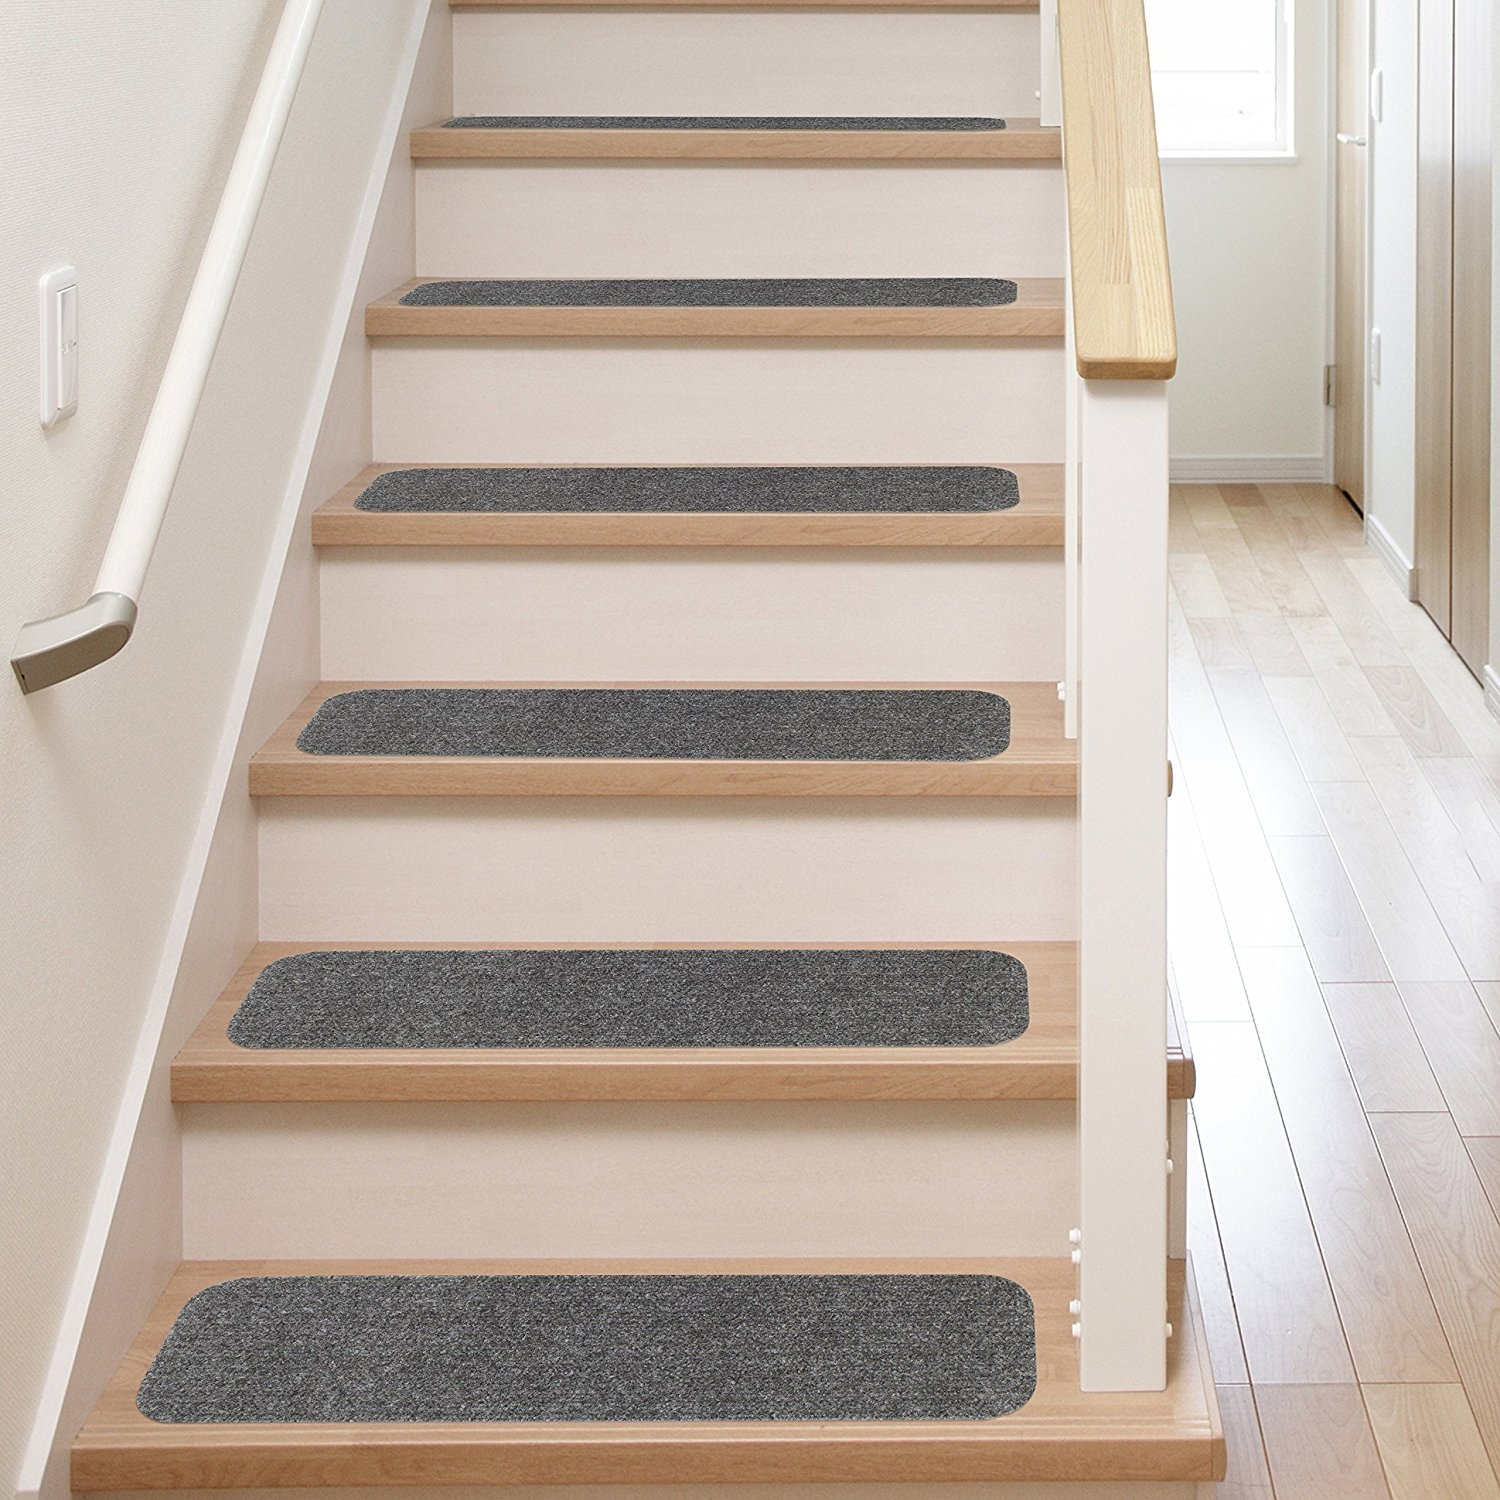 13 Stair Treads Non Slip Carpet Pads Easy Tape Installation Within Stair Tread Rug Sets (#1 of 20)